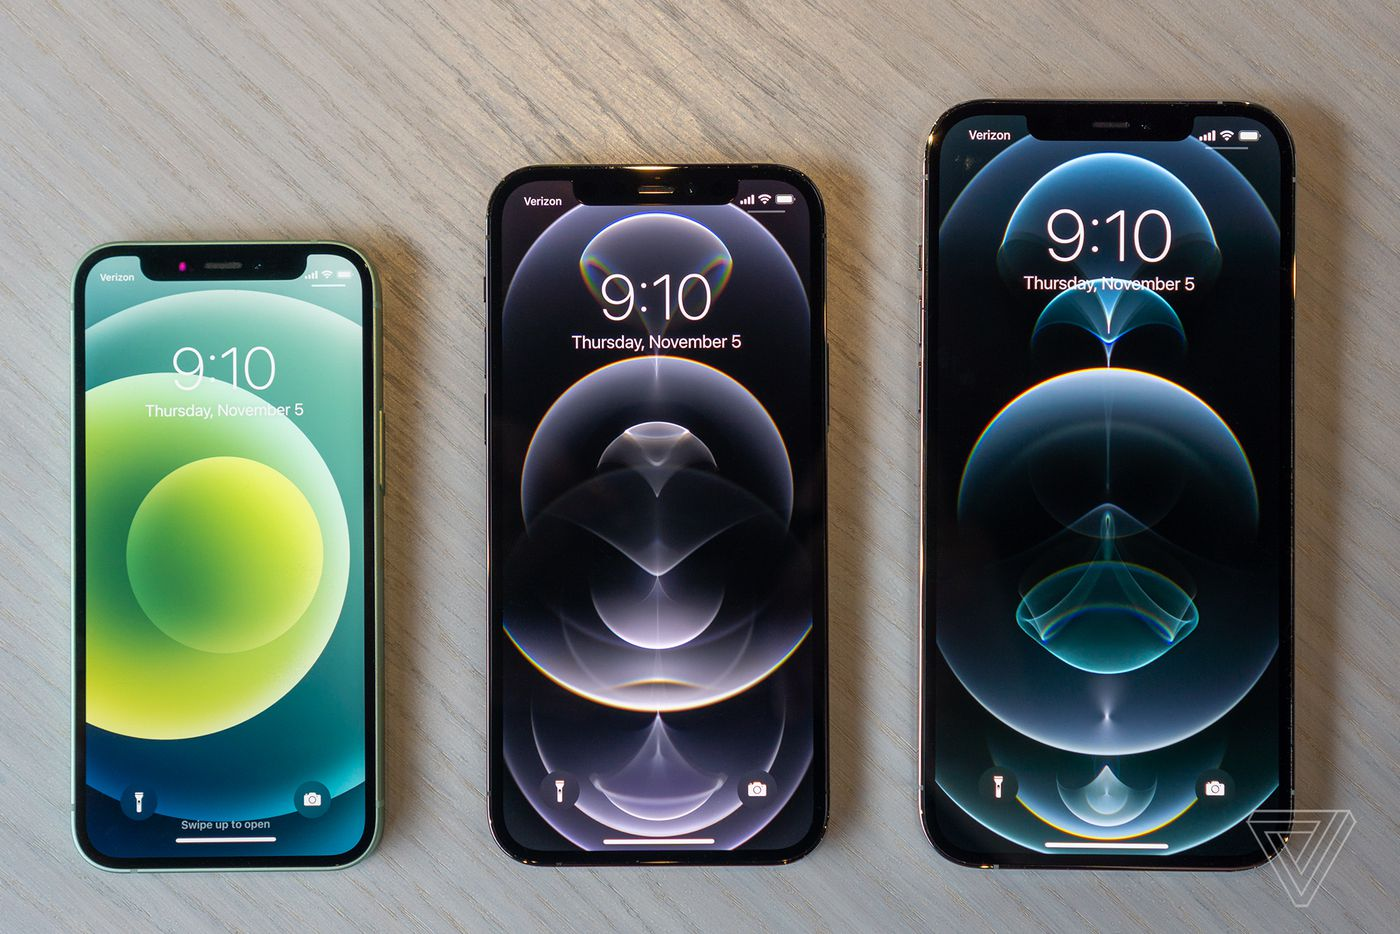 Iphone 12 Mini And Iphone 12 Pro Max Hands On Impressions The Verge